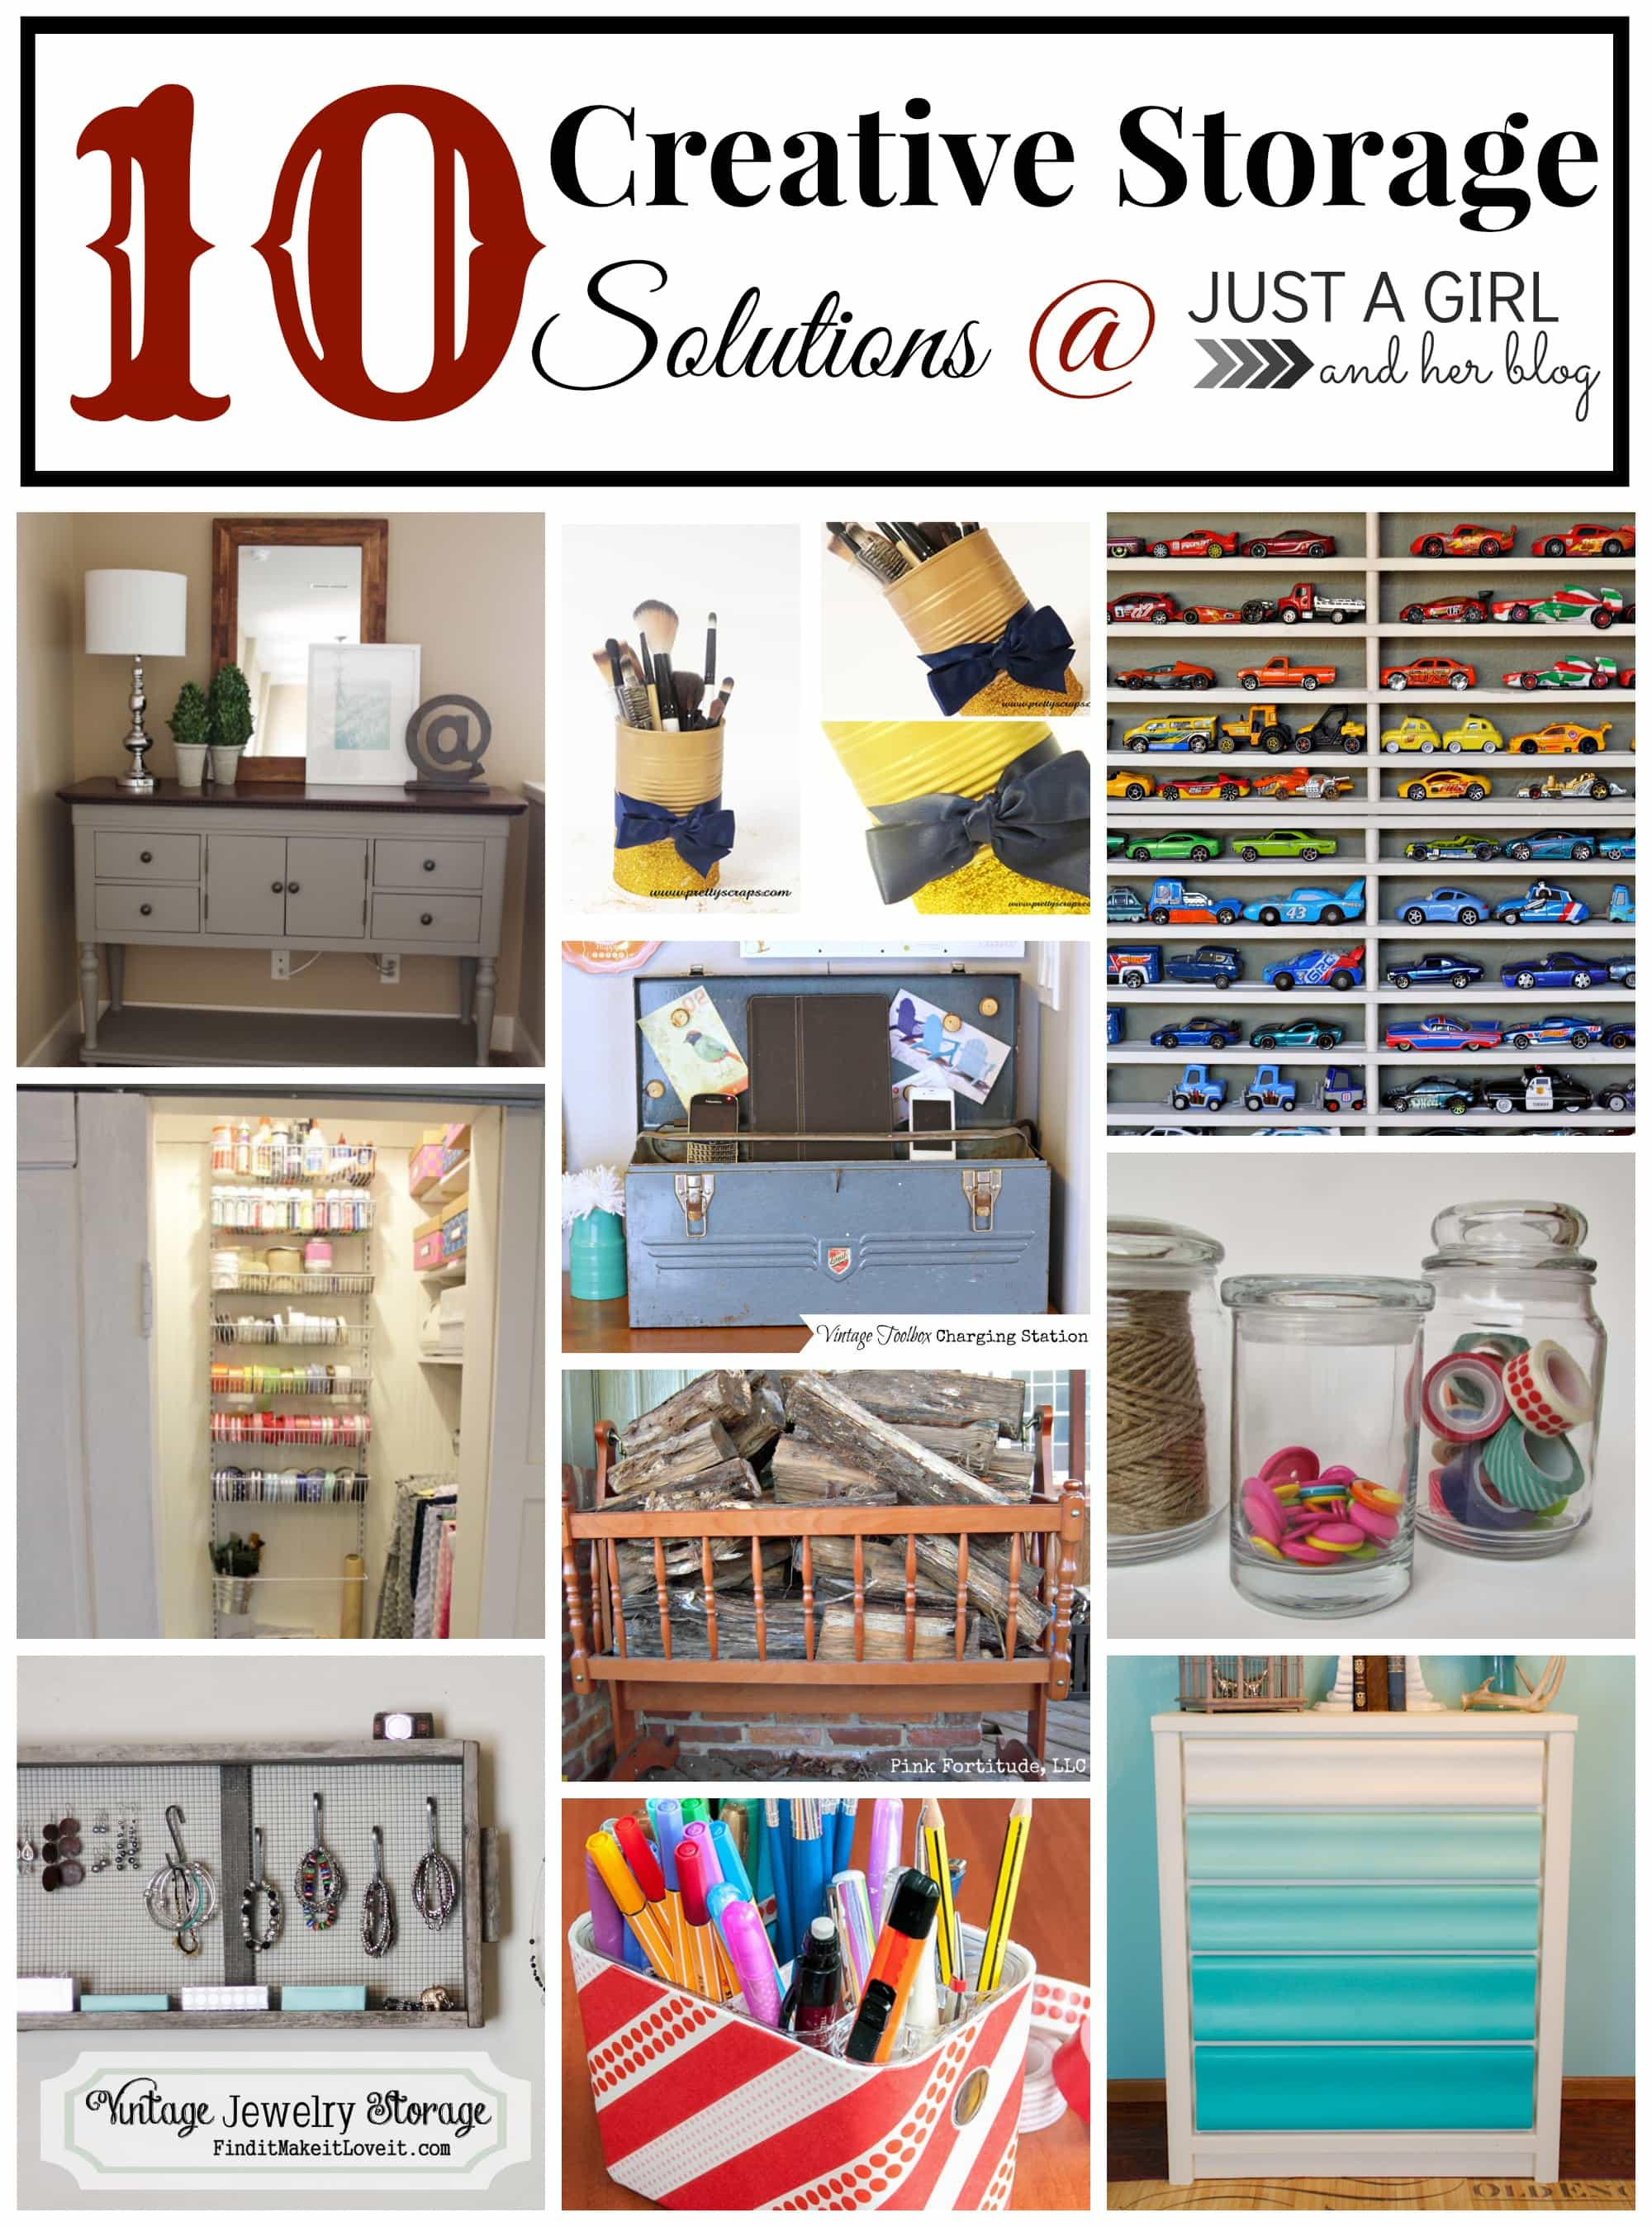 Solutions Storage 10 Creative Storage Solutions Just A Girl And Her Blog